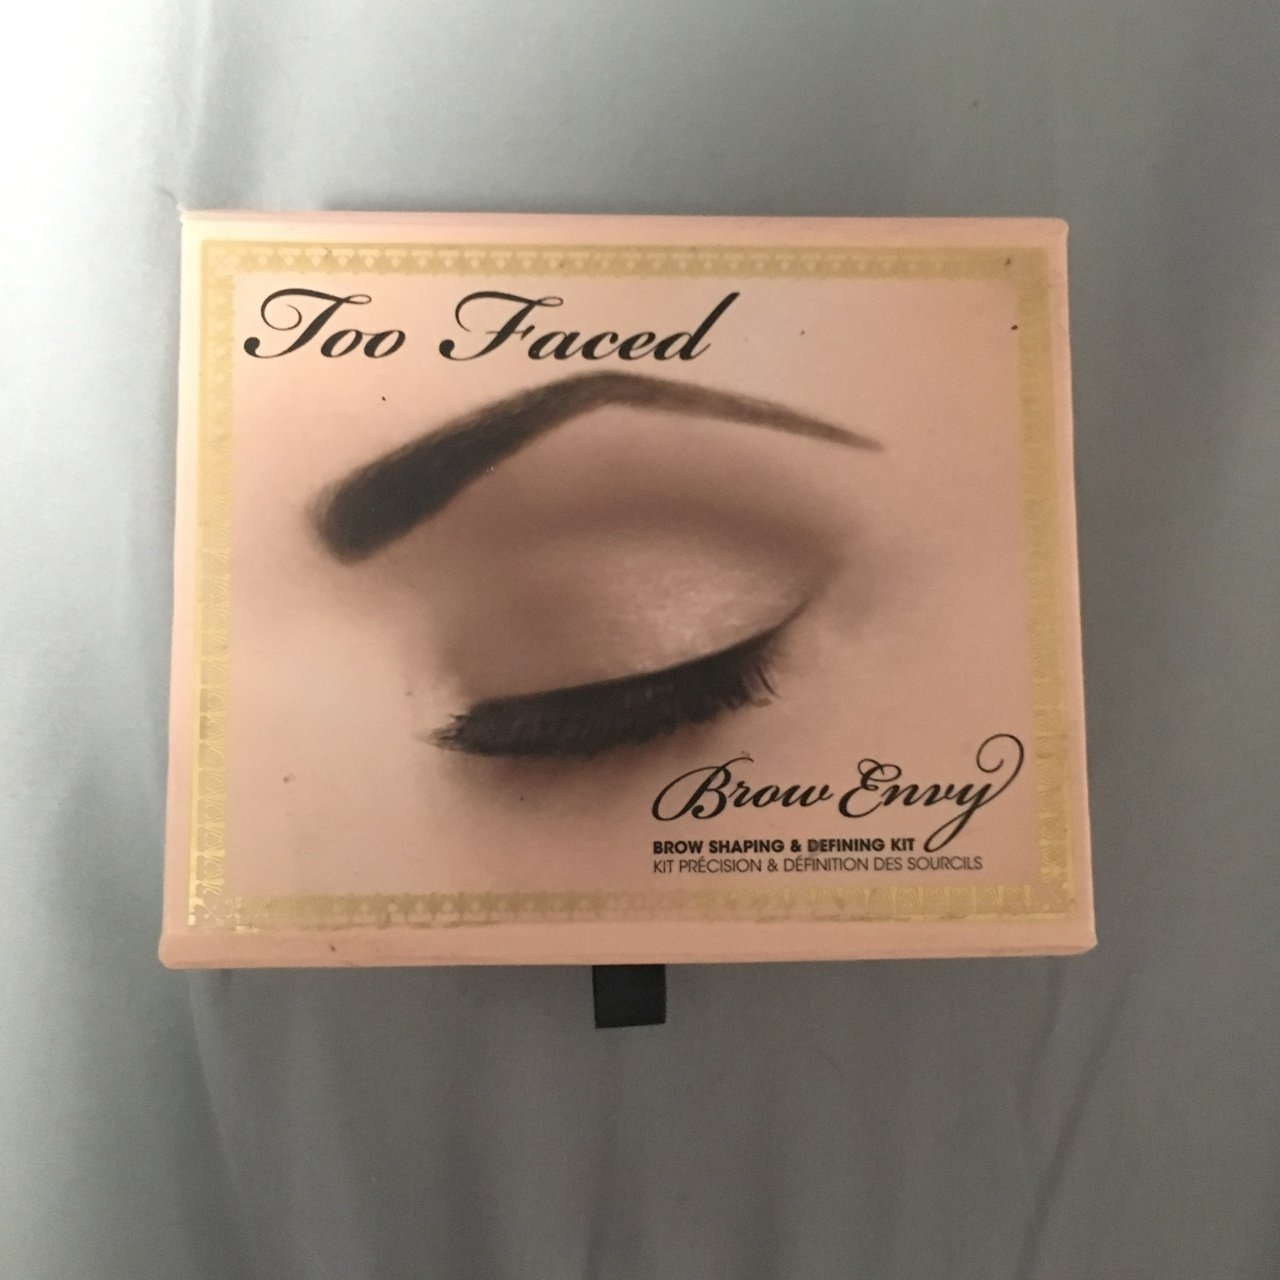 Too Faced Brow Envy Kit It Has Clearly Been Used But Most Depop